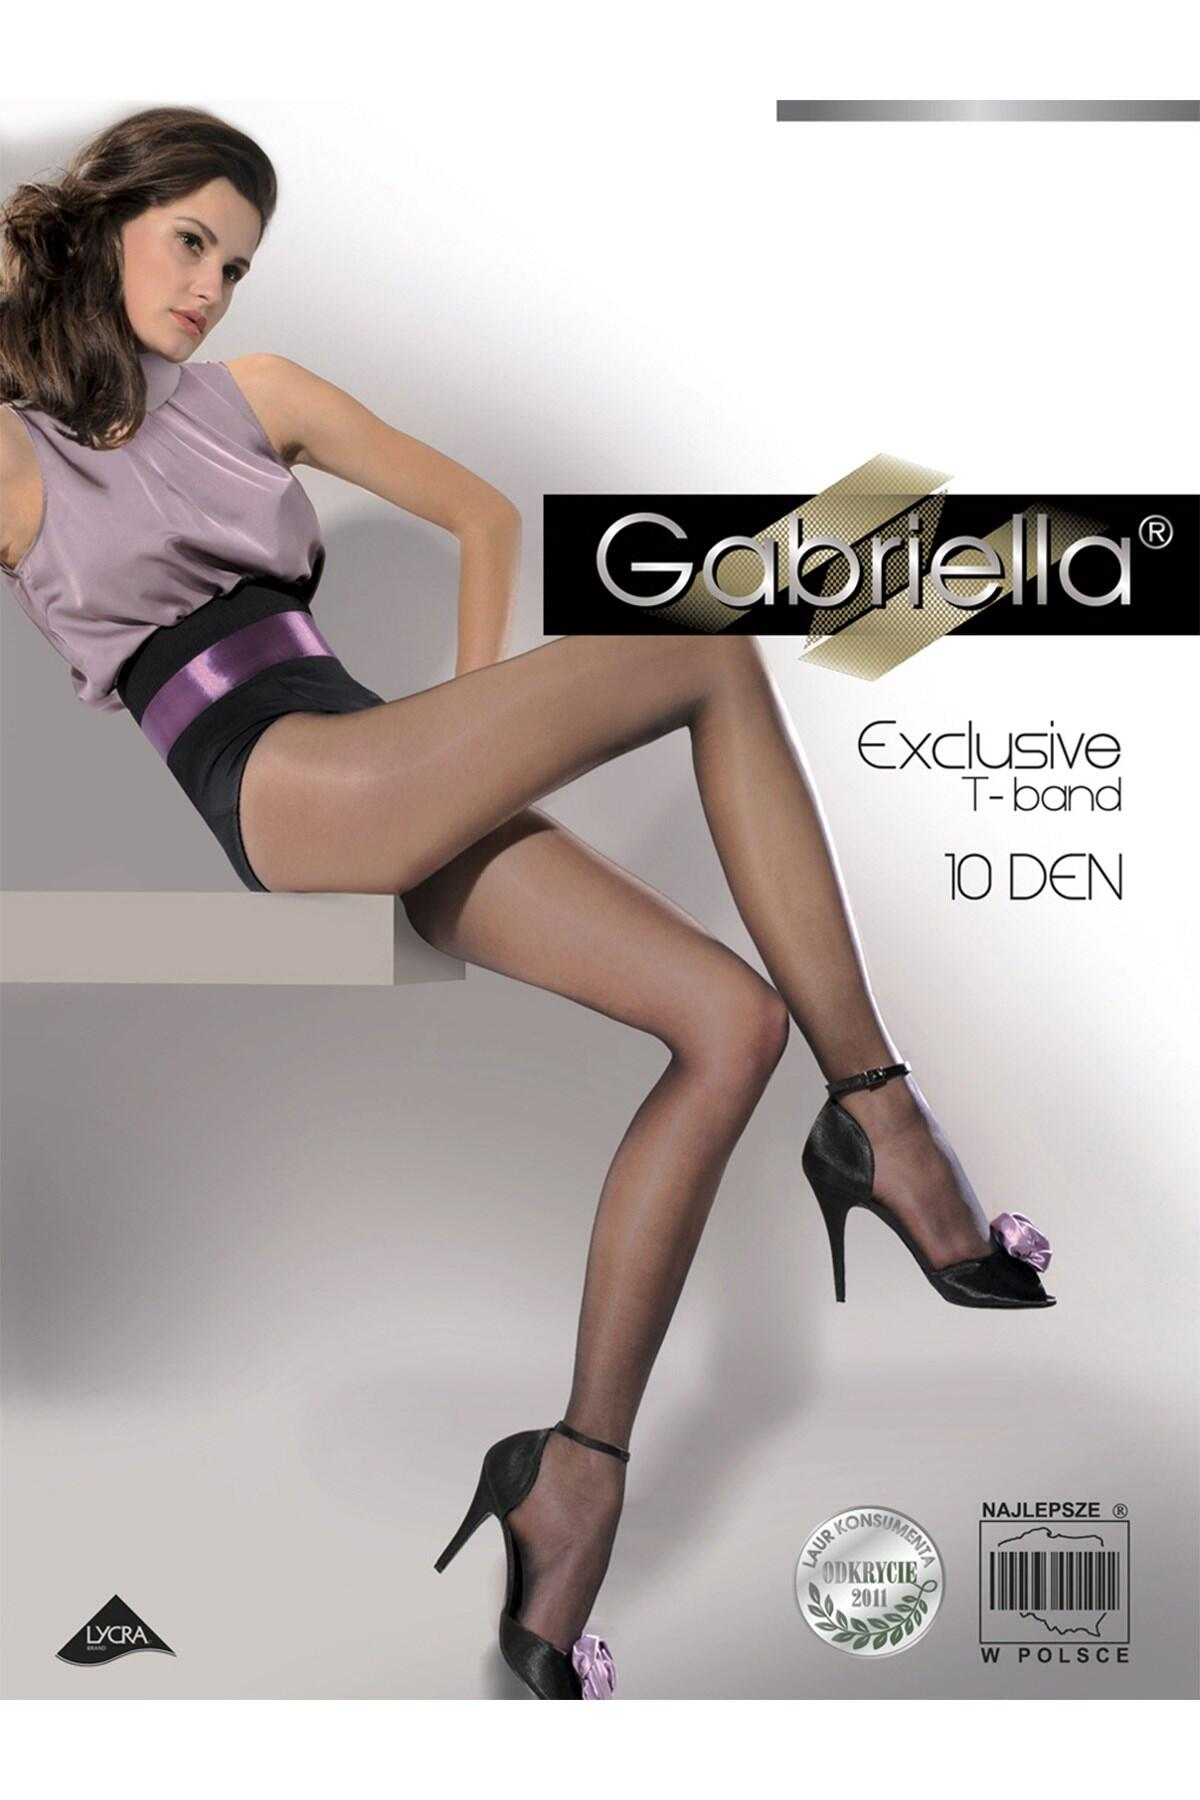 Gabriella Classic 10 Denier - Neutral